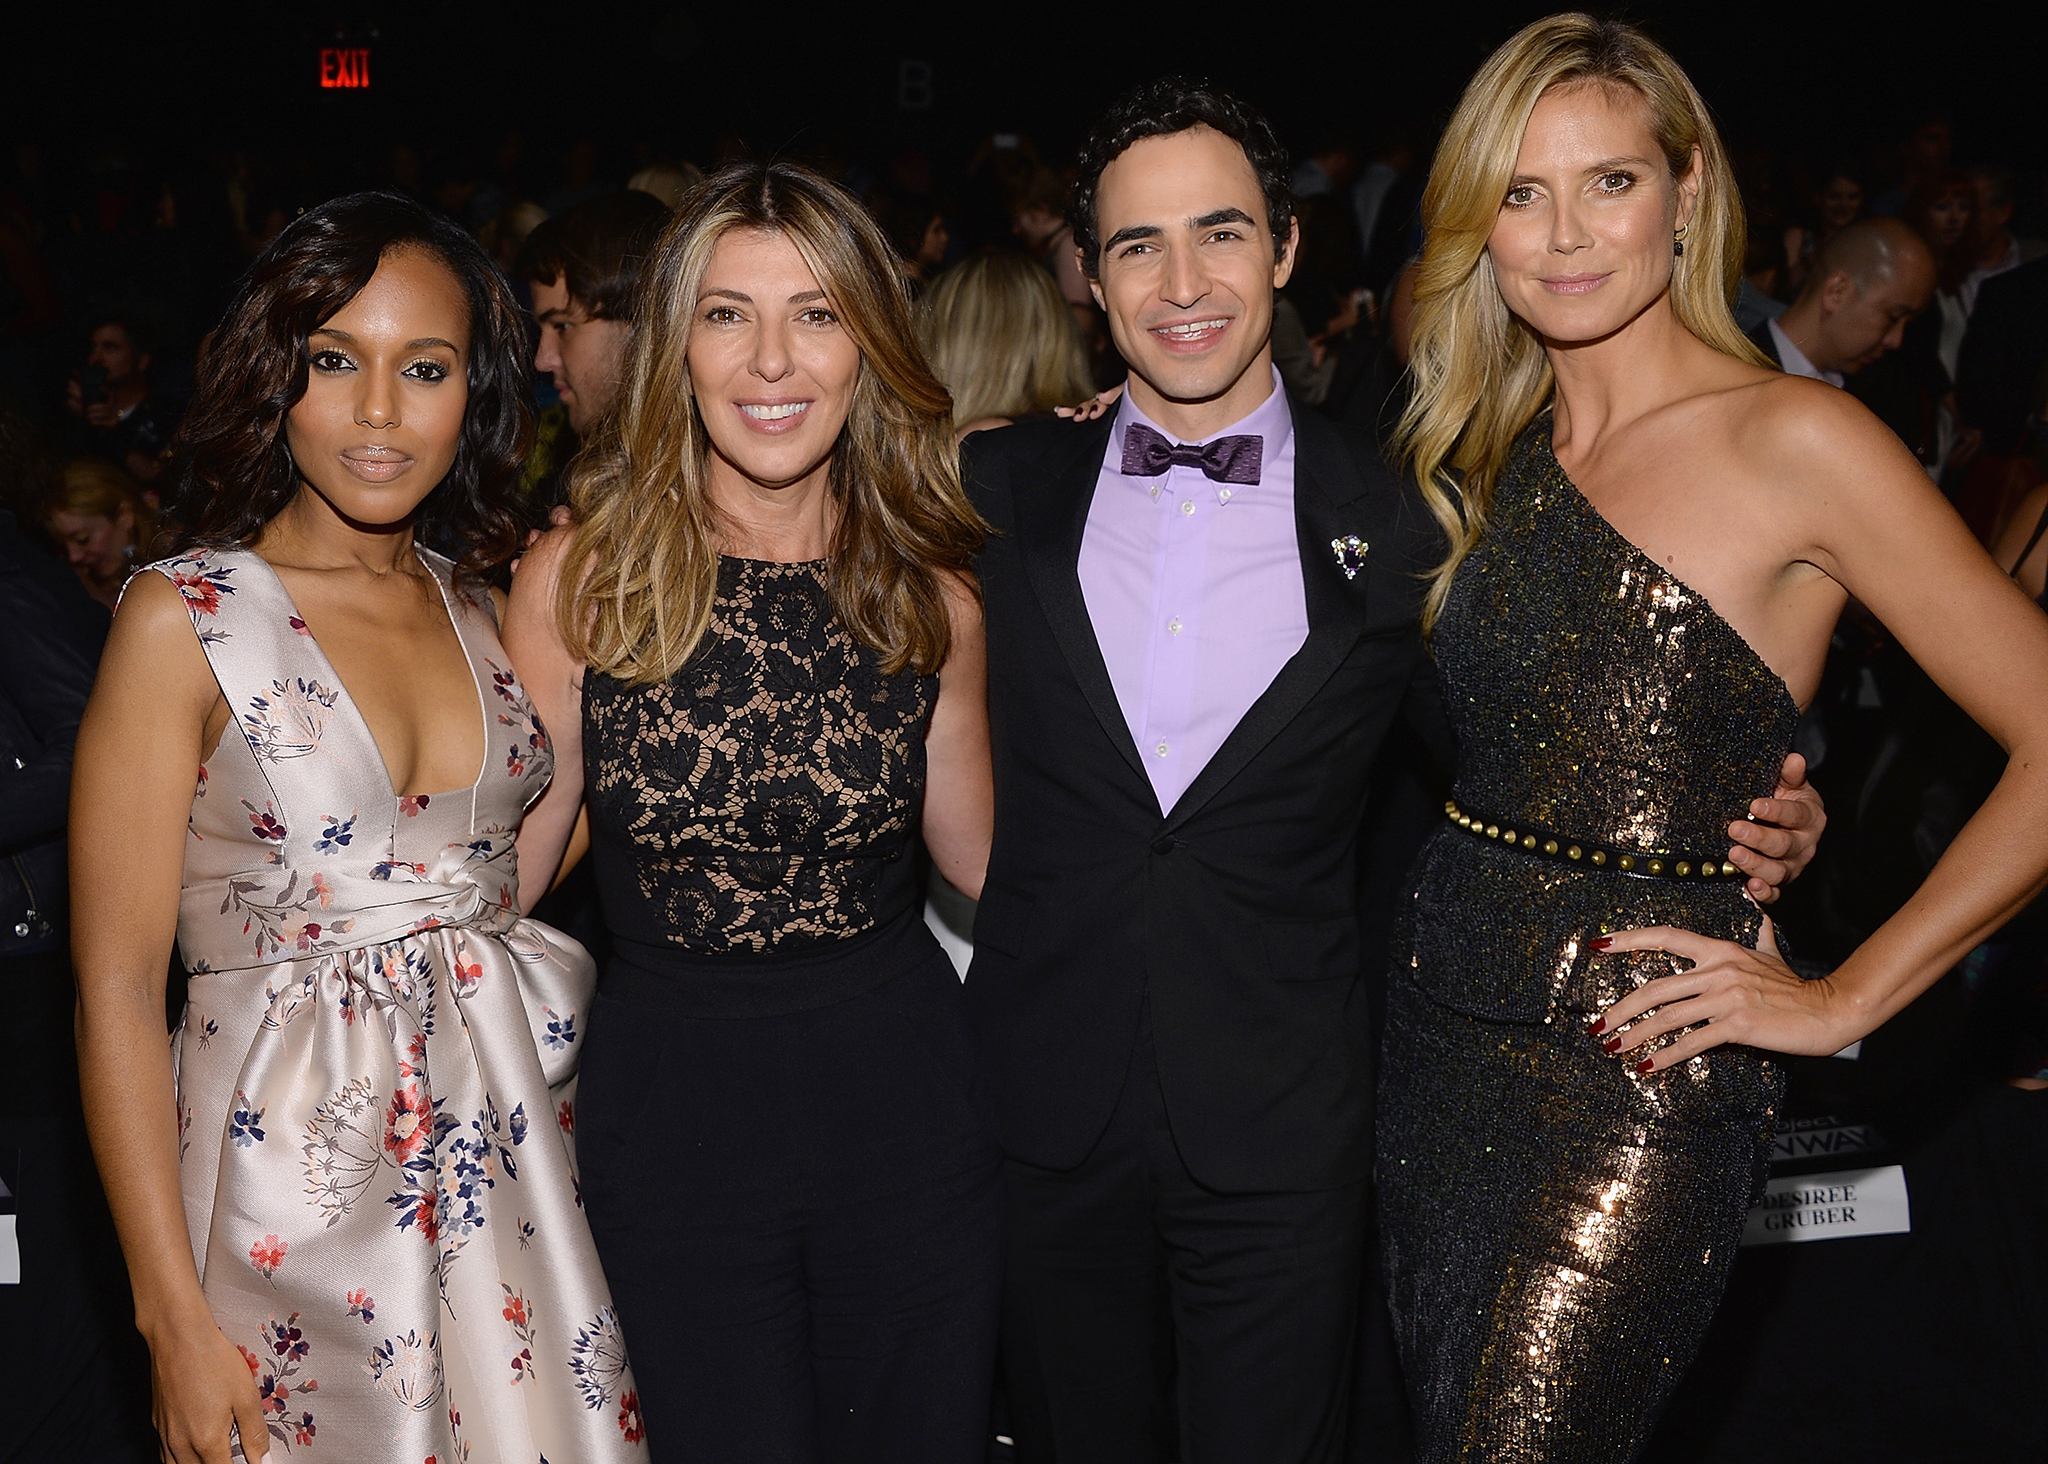 Zac Posen with Kerry Washington, Nina Garcia, and Heidi Klum taping the 'Project Runway' finale. (WireImage)